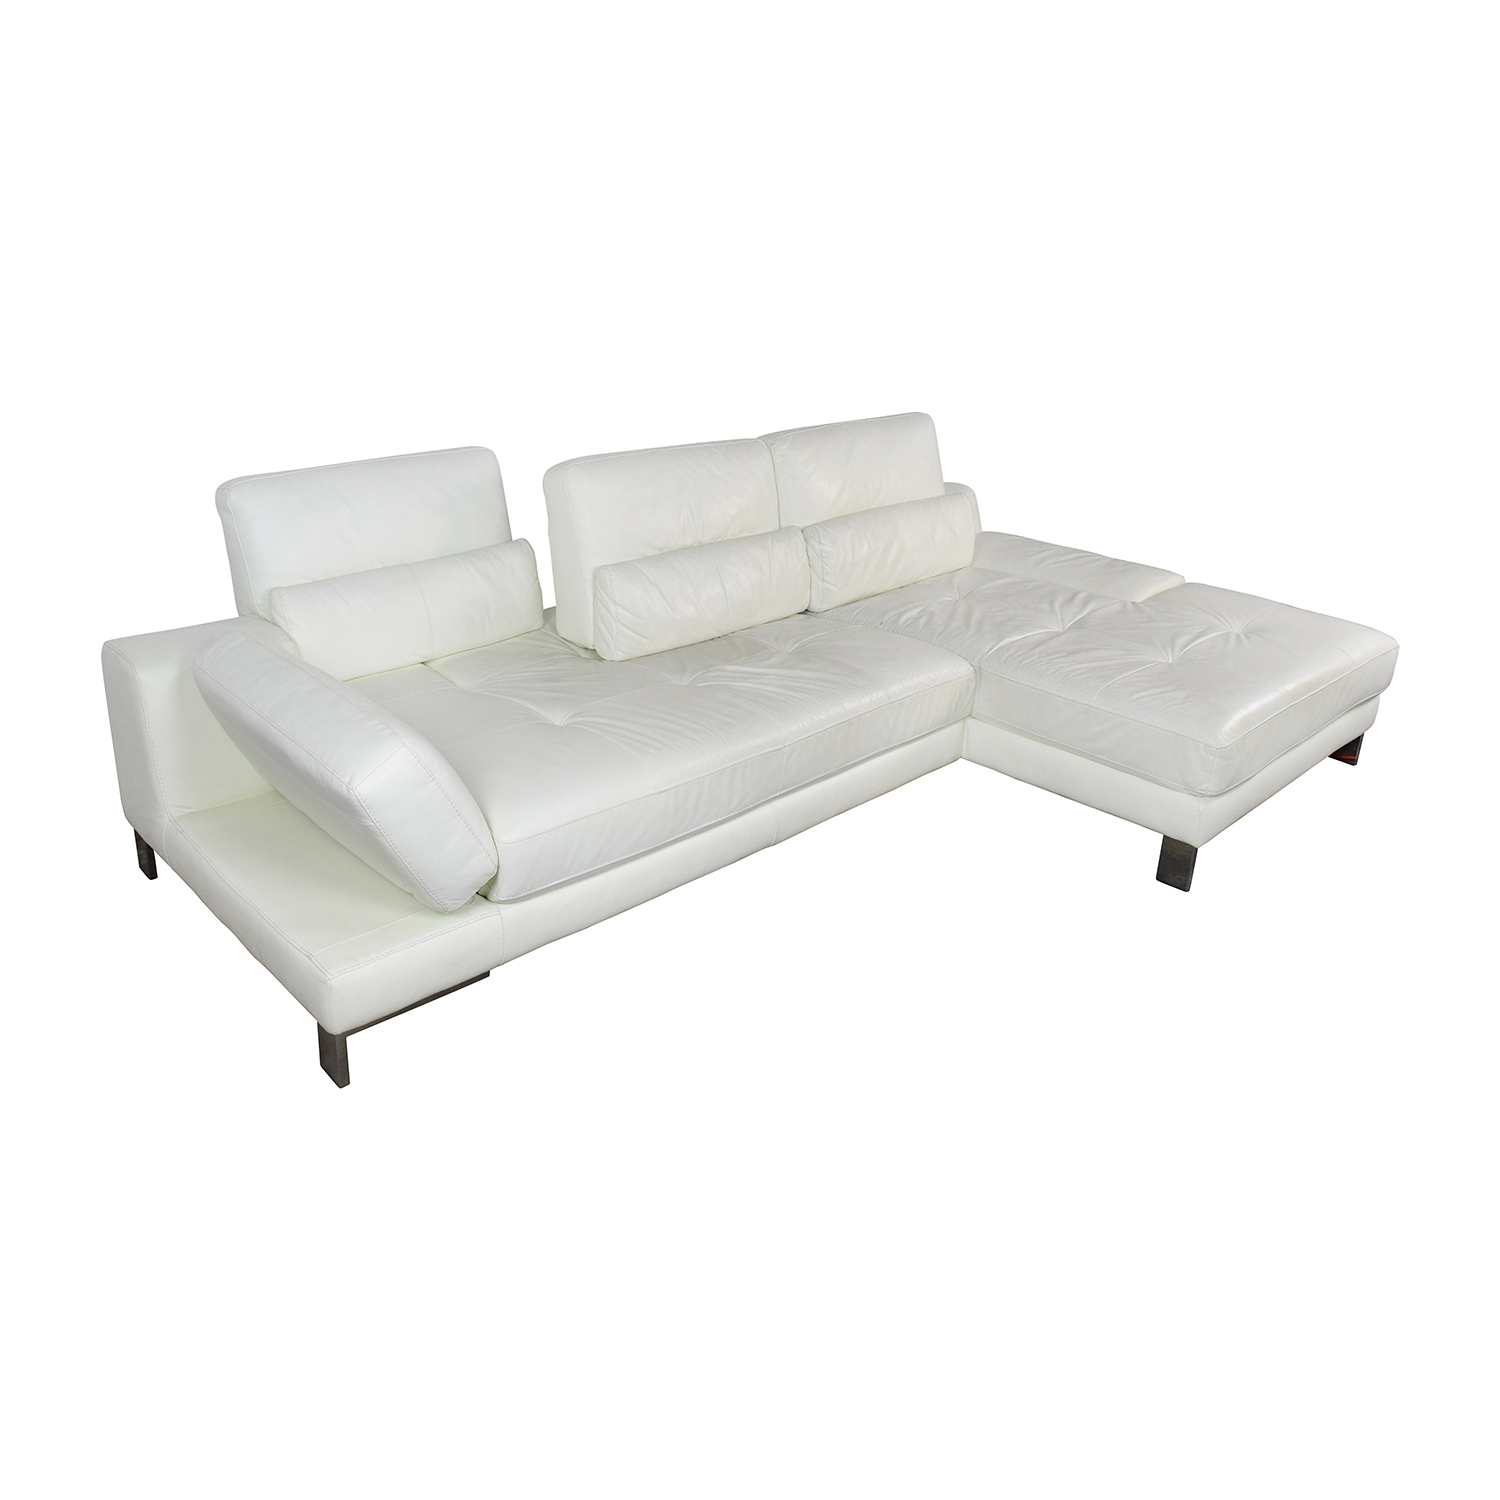 Leather Sofas Canada: Mobilia Mobilia Canada Funktion White Leather